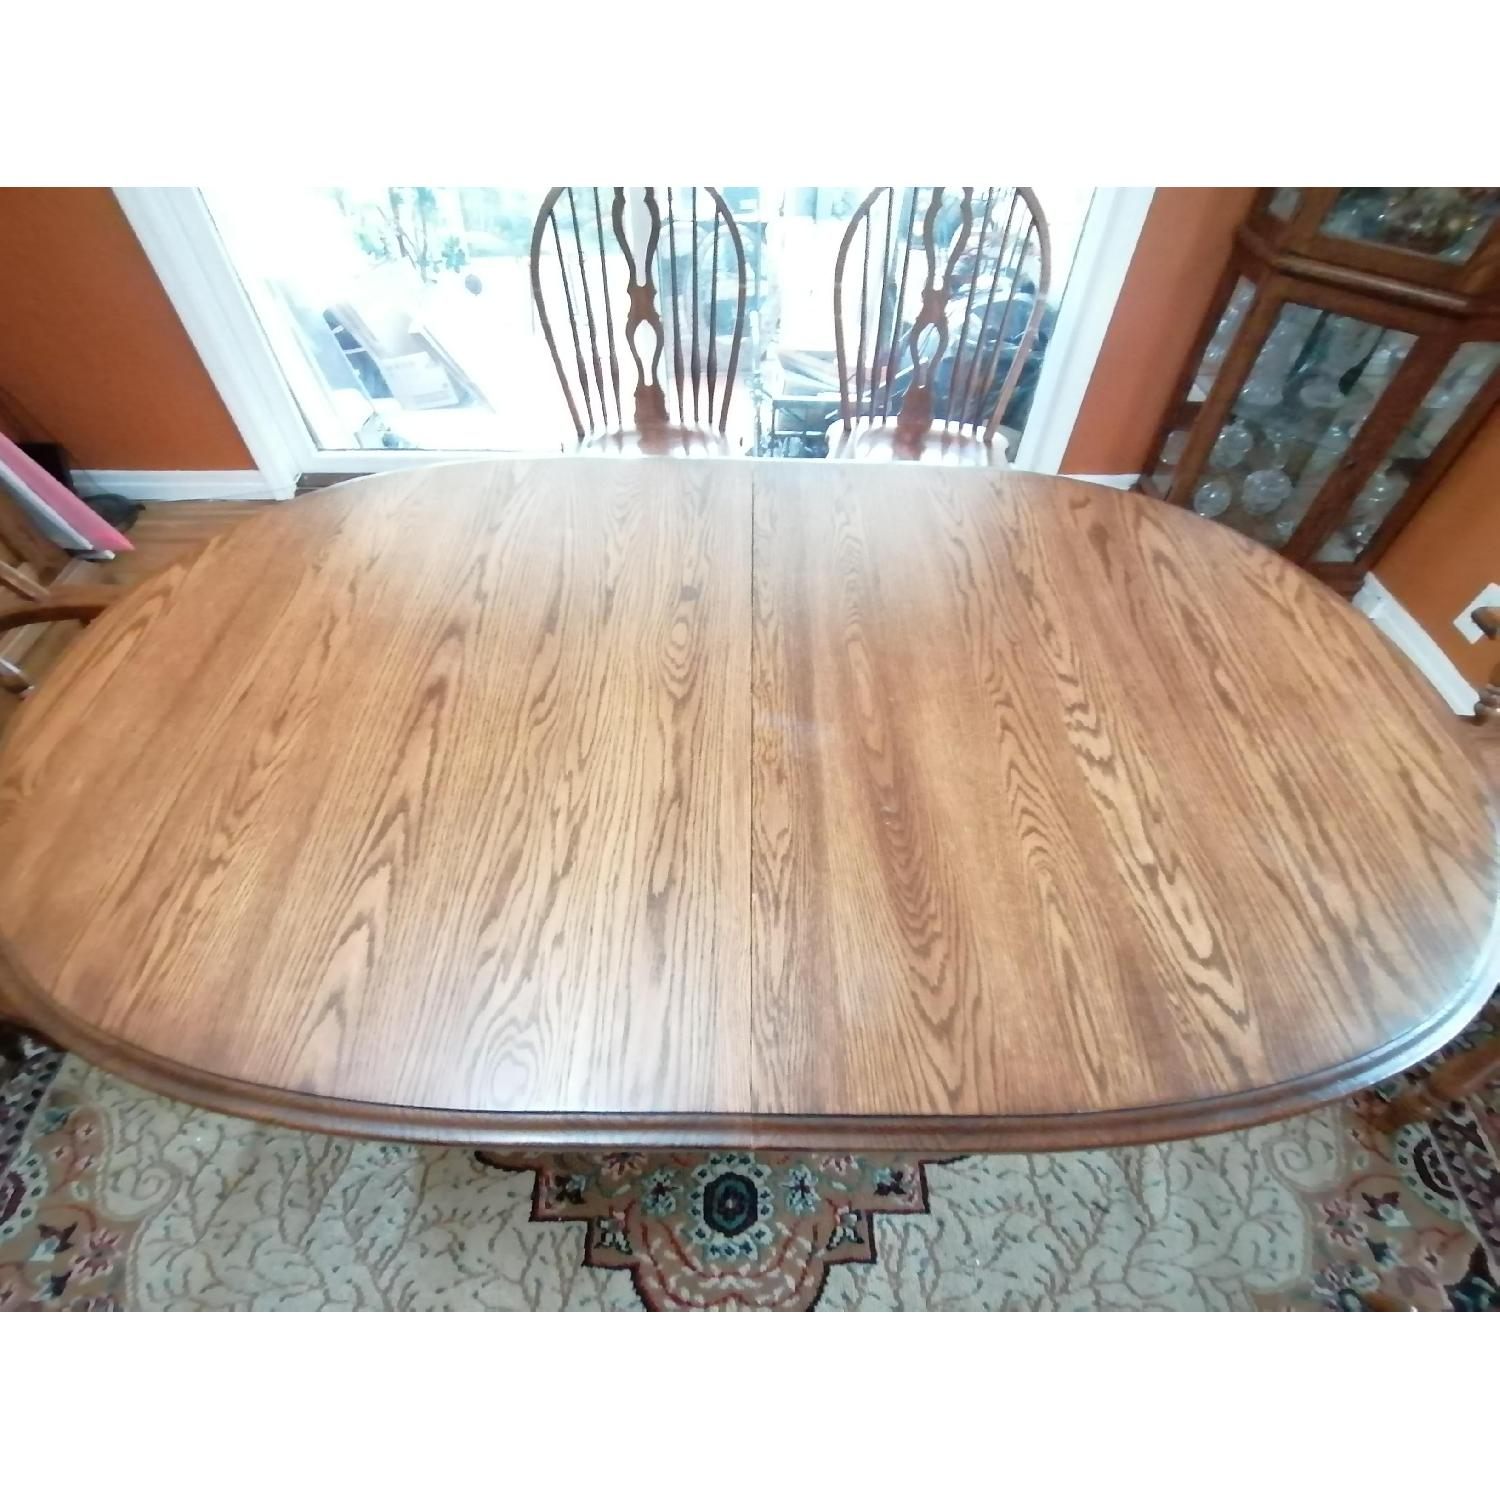 Raymour & Flanigan Extendable Dining Table w/ 6 Chairs - image-3